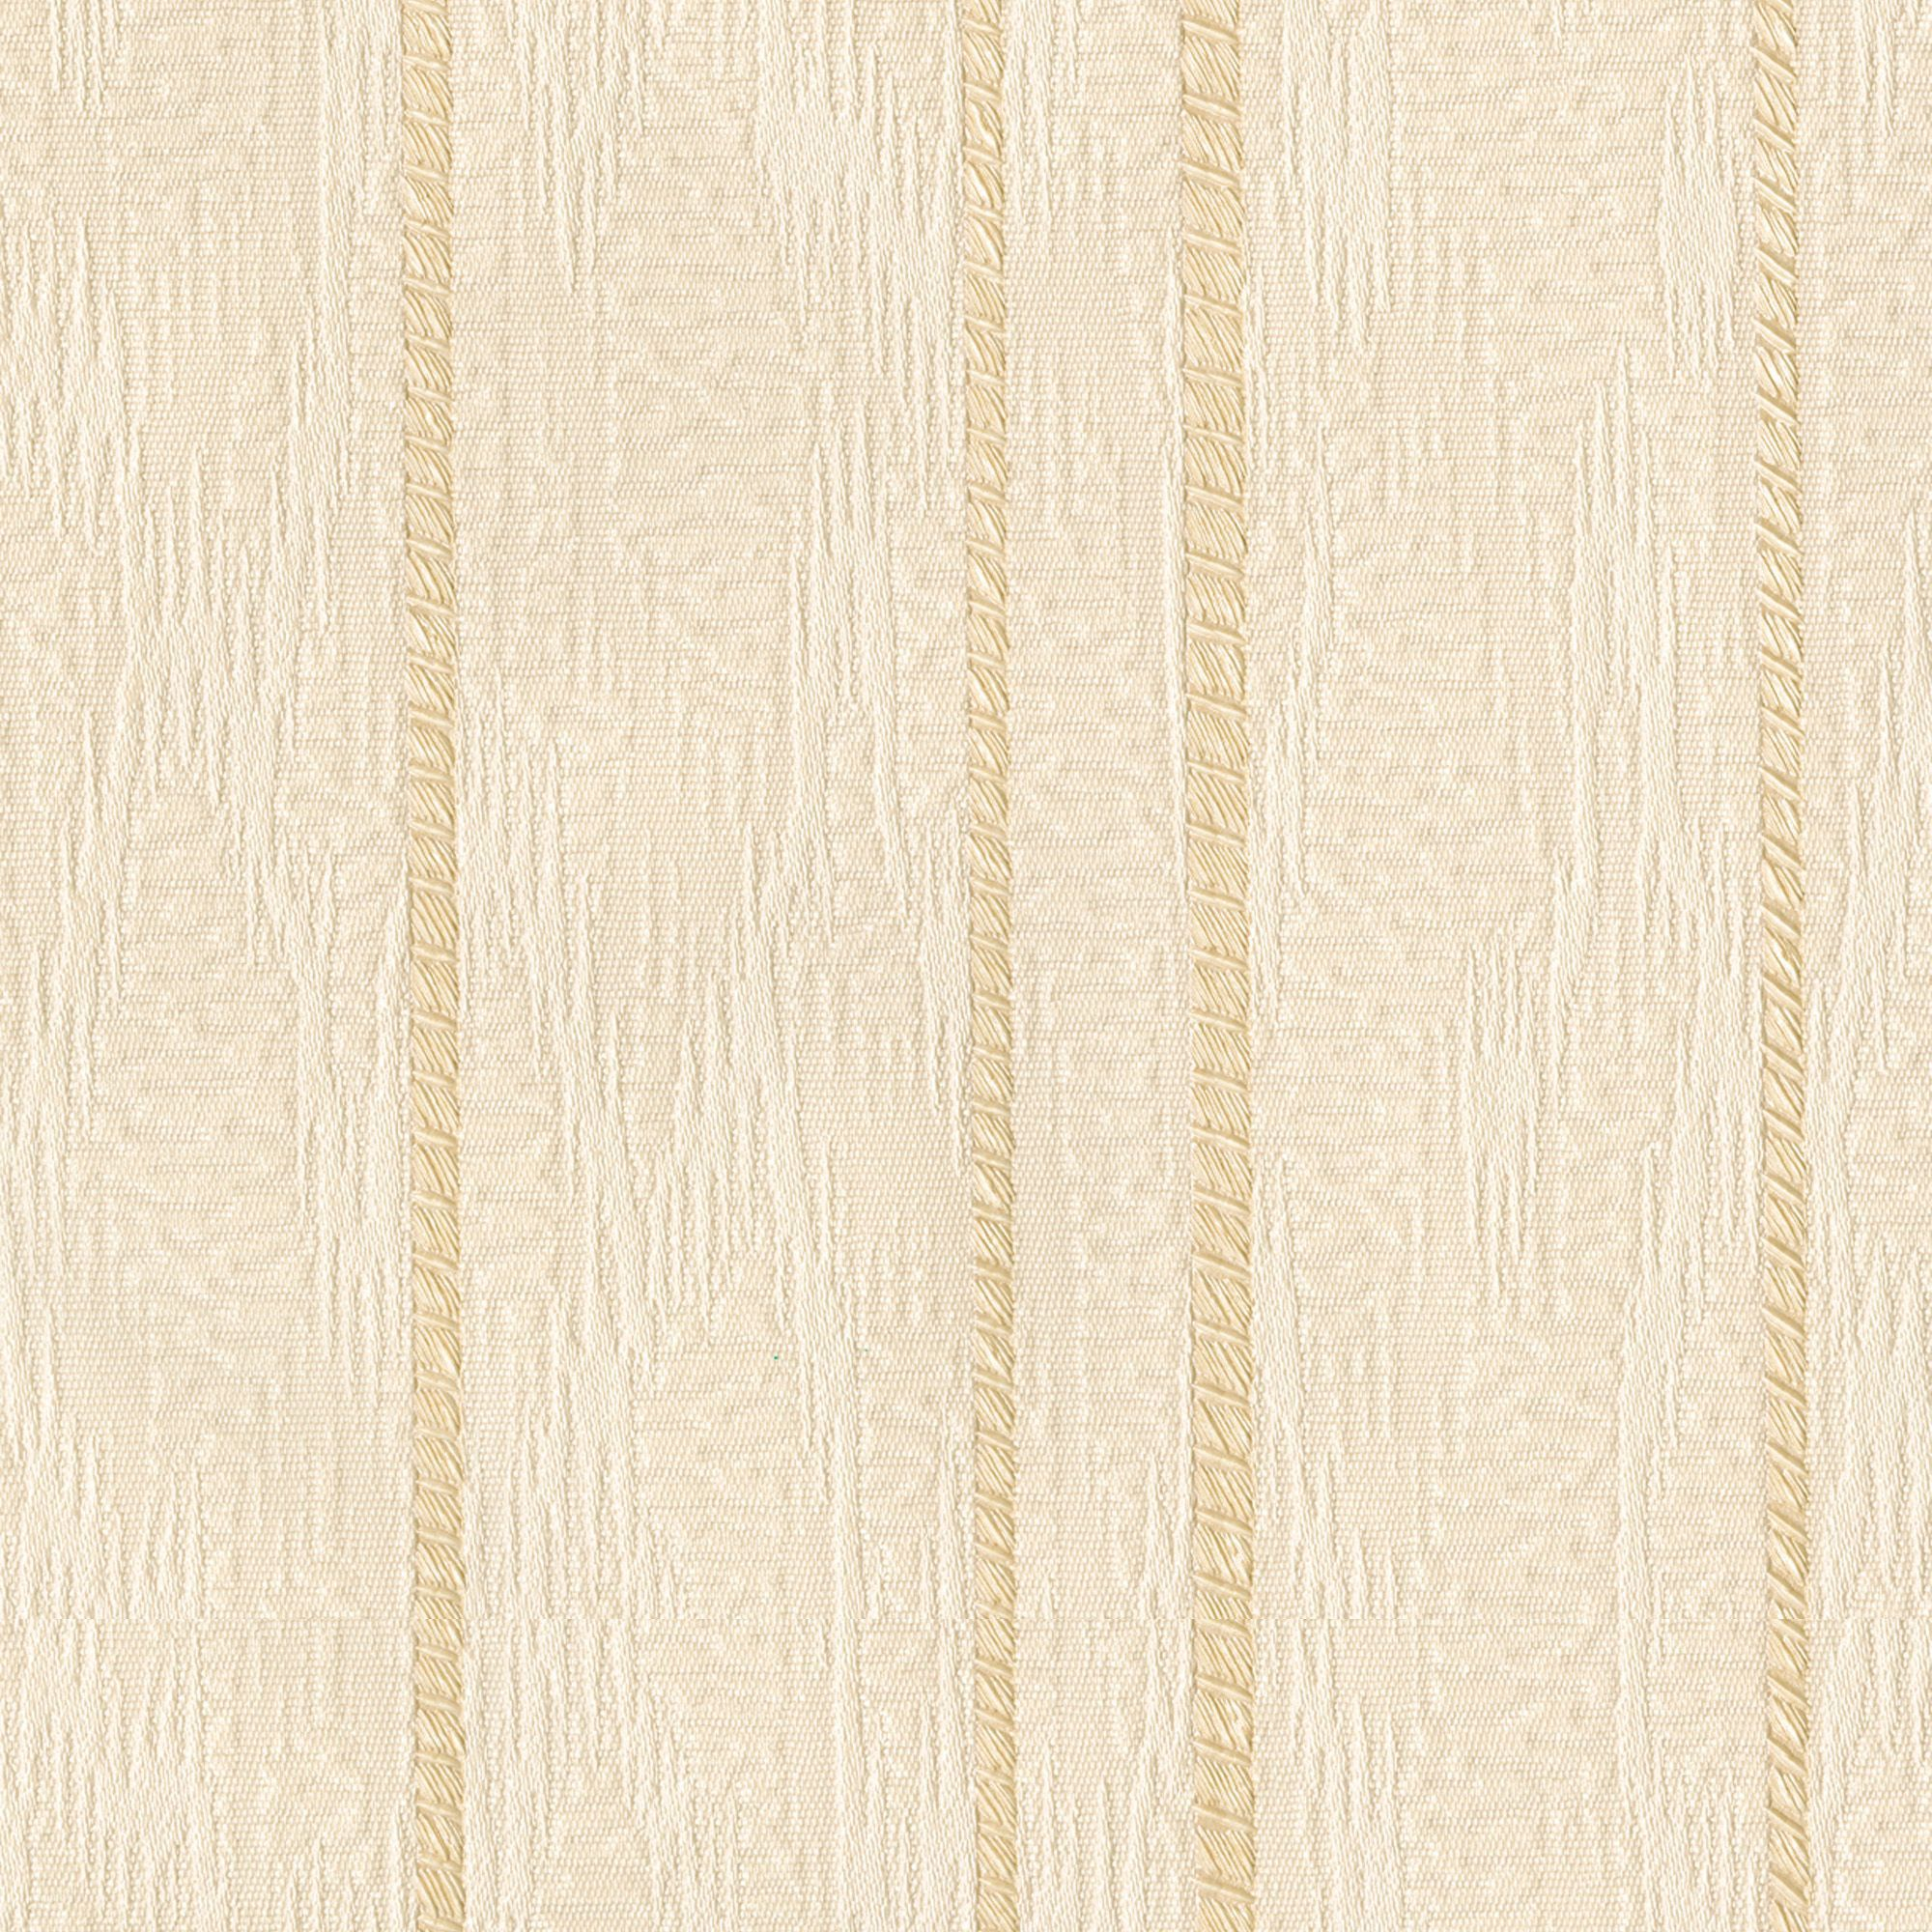 Flame Stitch Cream Striped Wallpaper Departments